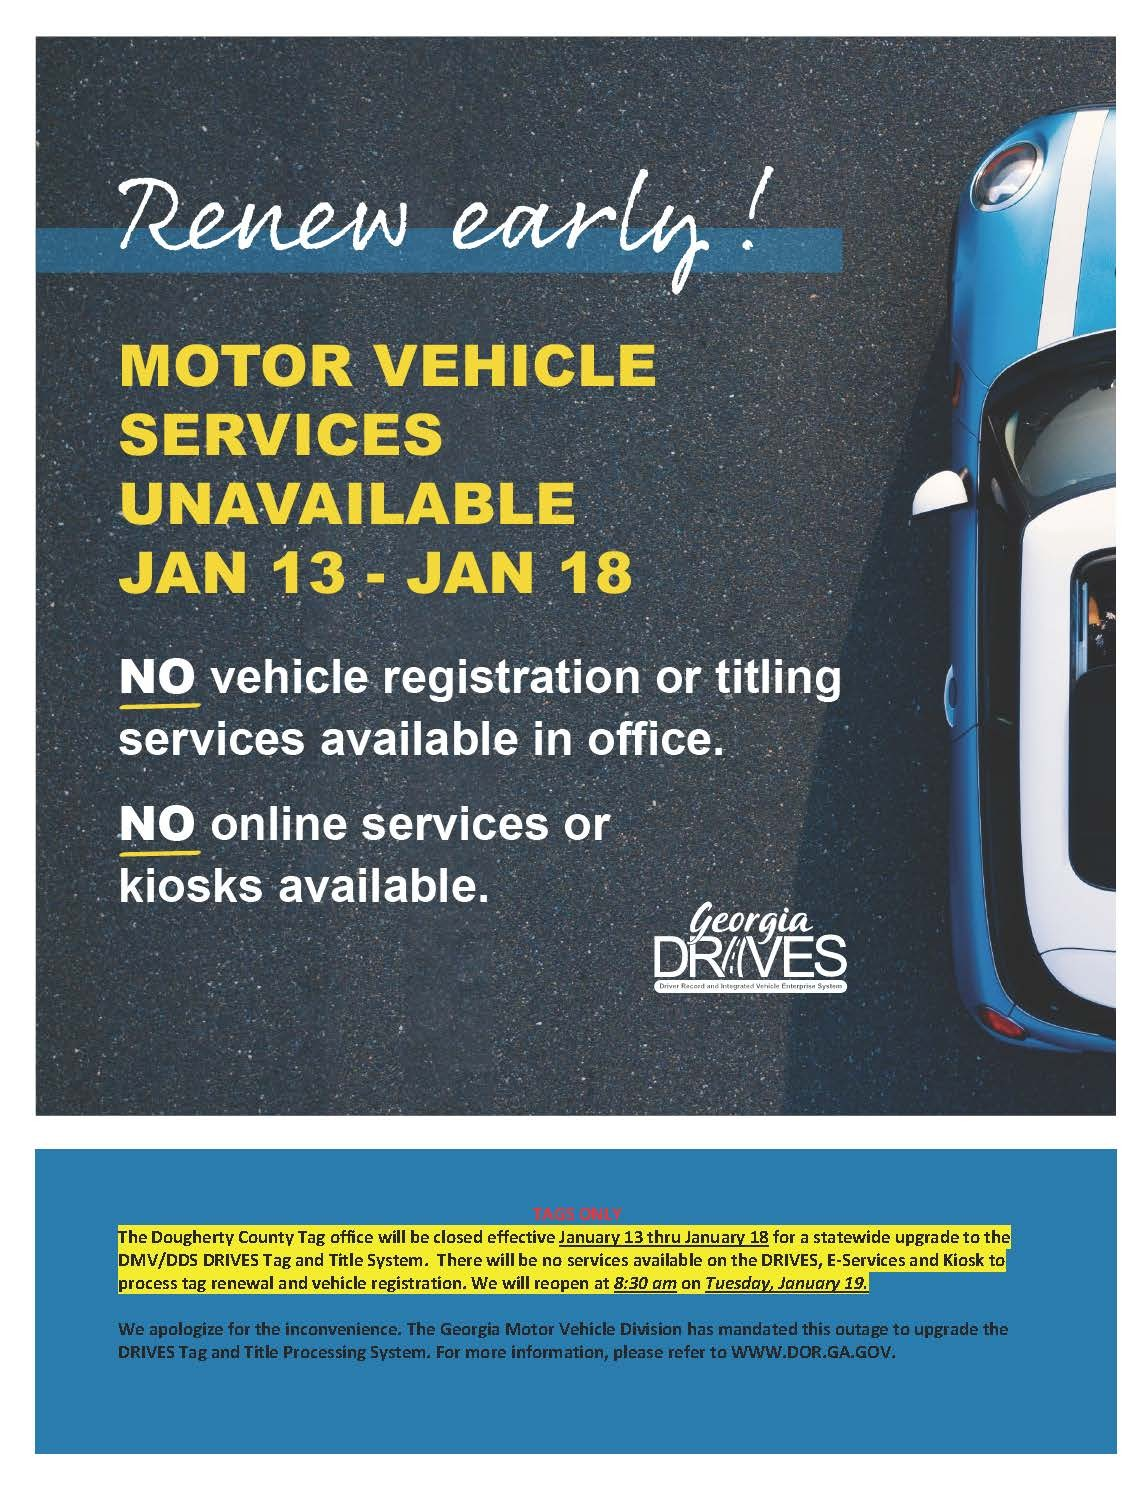 Renew early! Motor vehicle services unavailable Jan 13 - Jan 18. No vehicle registration or titling services available in office. No online services or kiosks available.